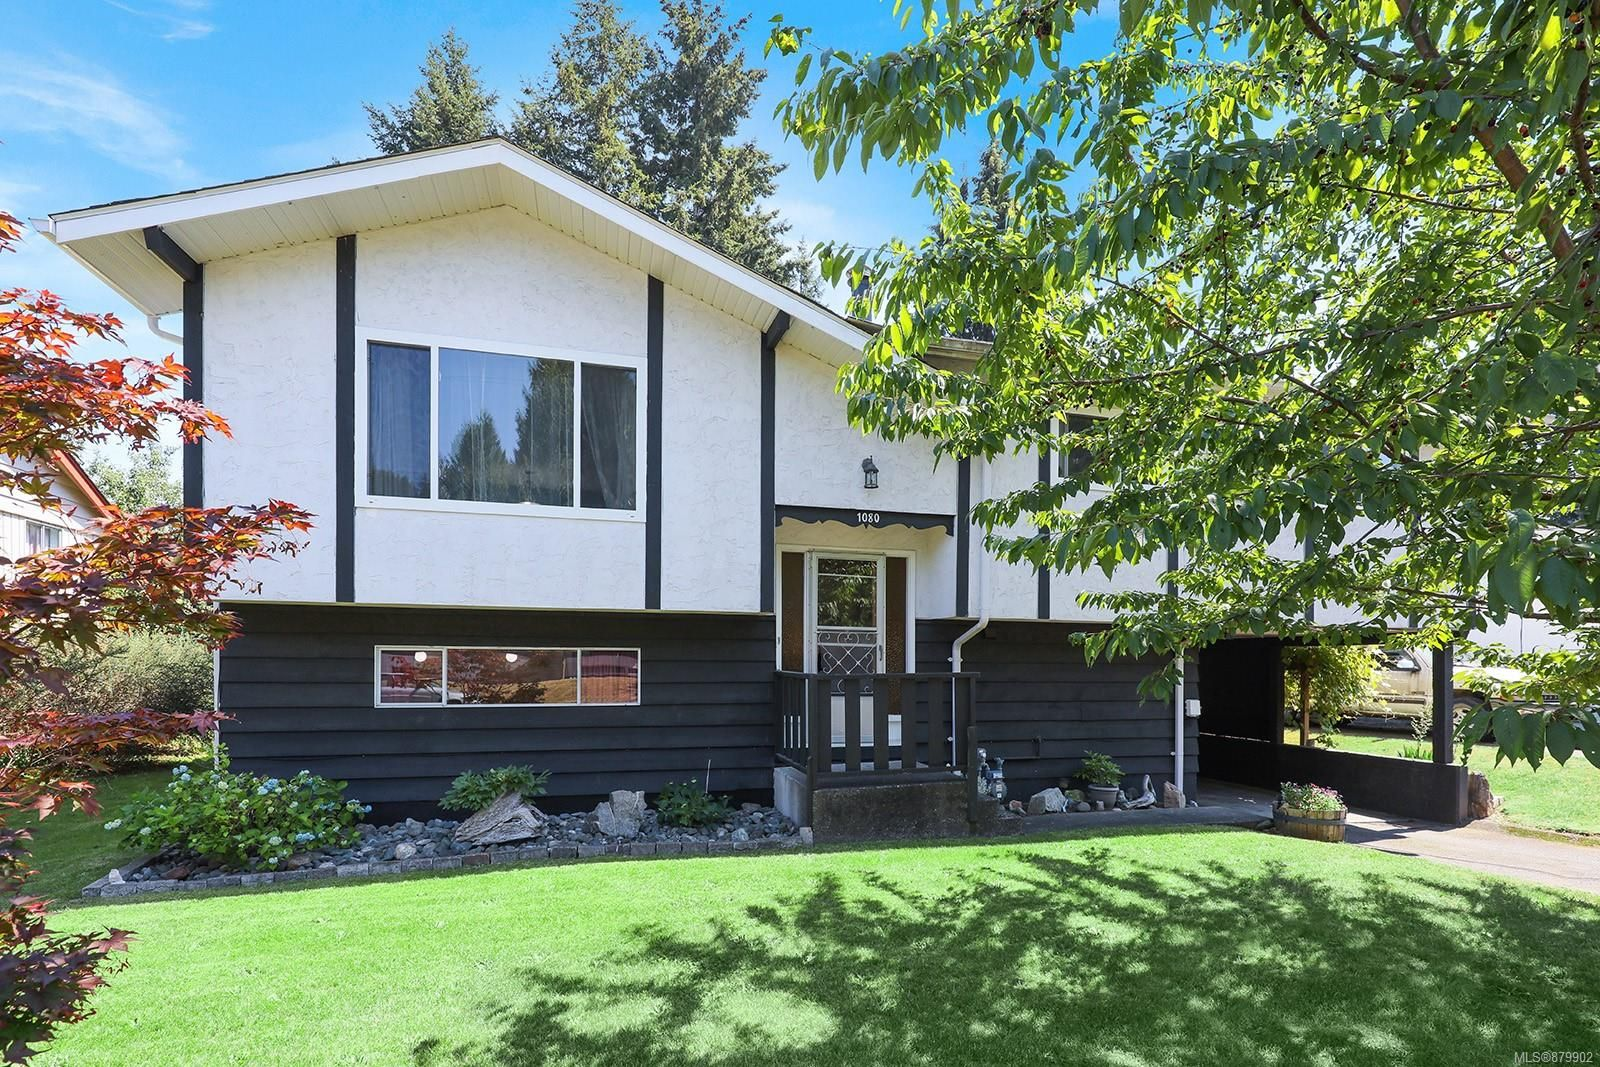 Main Photo: 1080 16th St in : CV Courtenay City House for sale (Comox Valley)  : MLS®# 879902